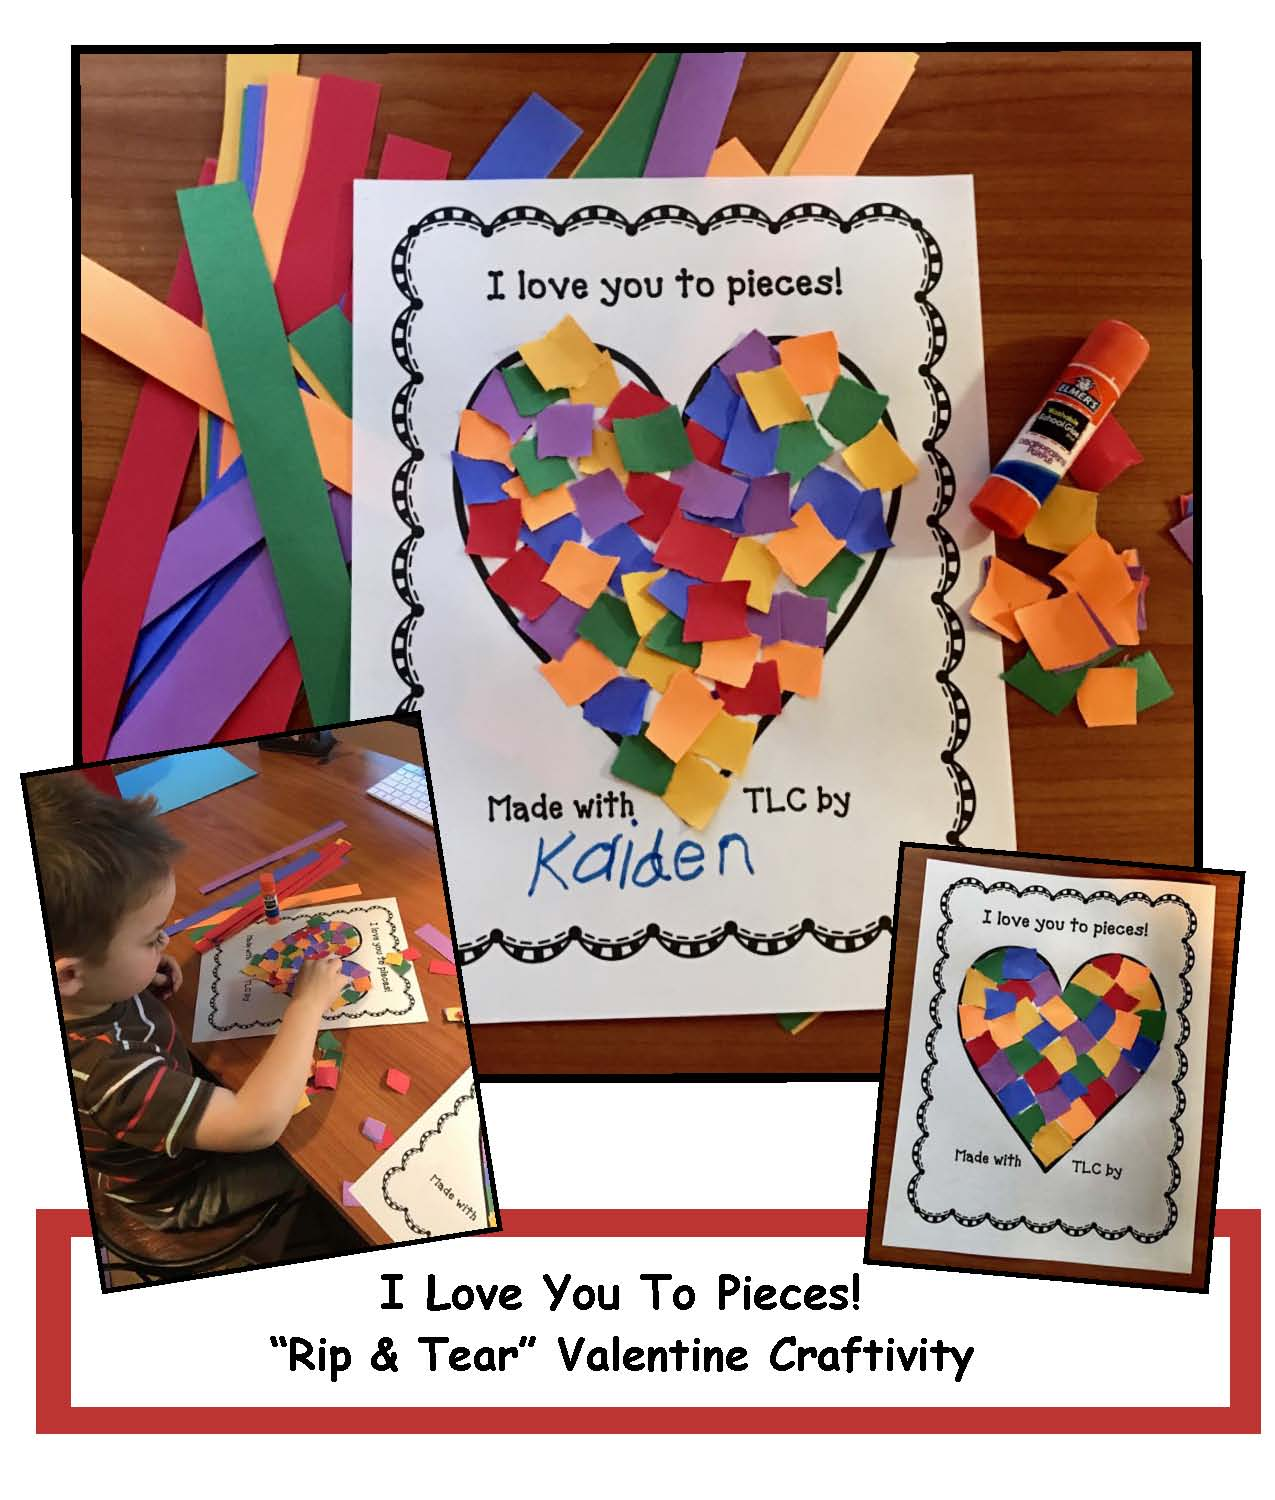 Tear fall colored construction paper into small pieces and glue - Simply Print The Worksheet And Cut Strips Out Of A Variety Of Colors Of Construction Paper Children Choose Their Colors Then Rip The Strips Into Smaller